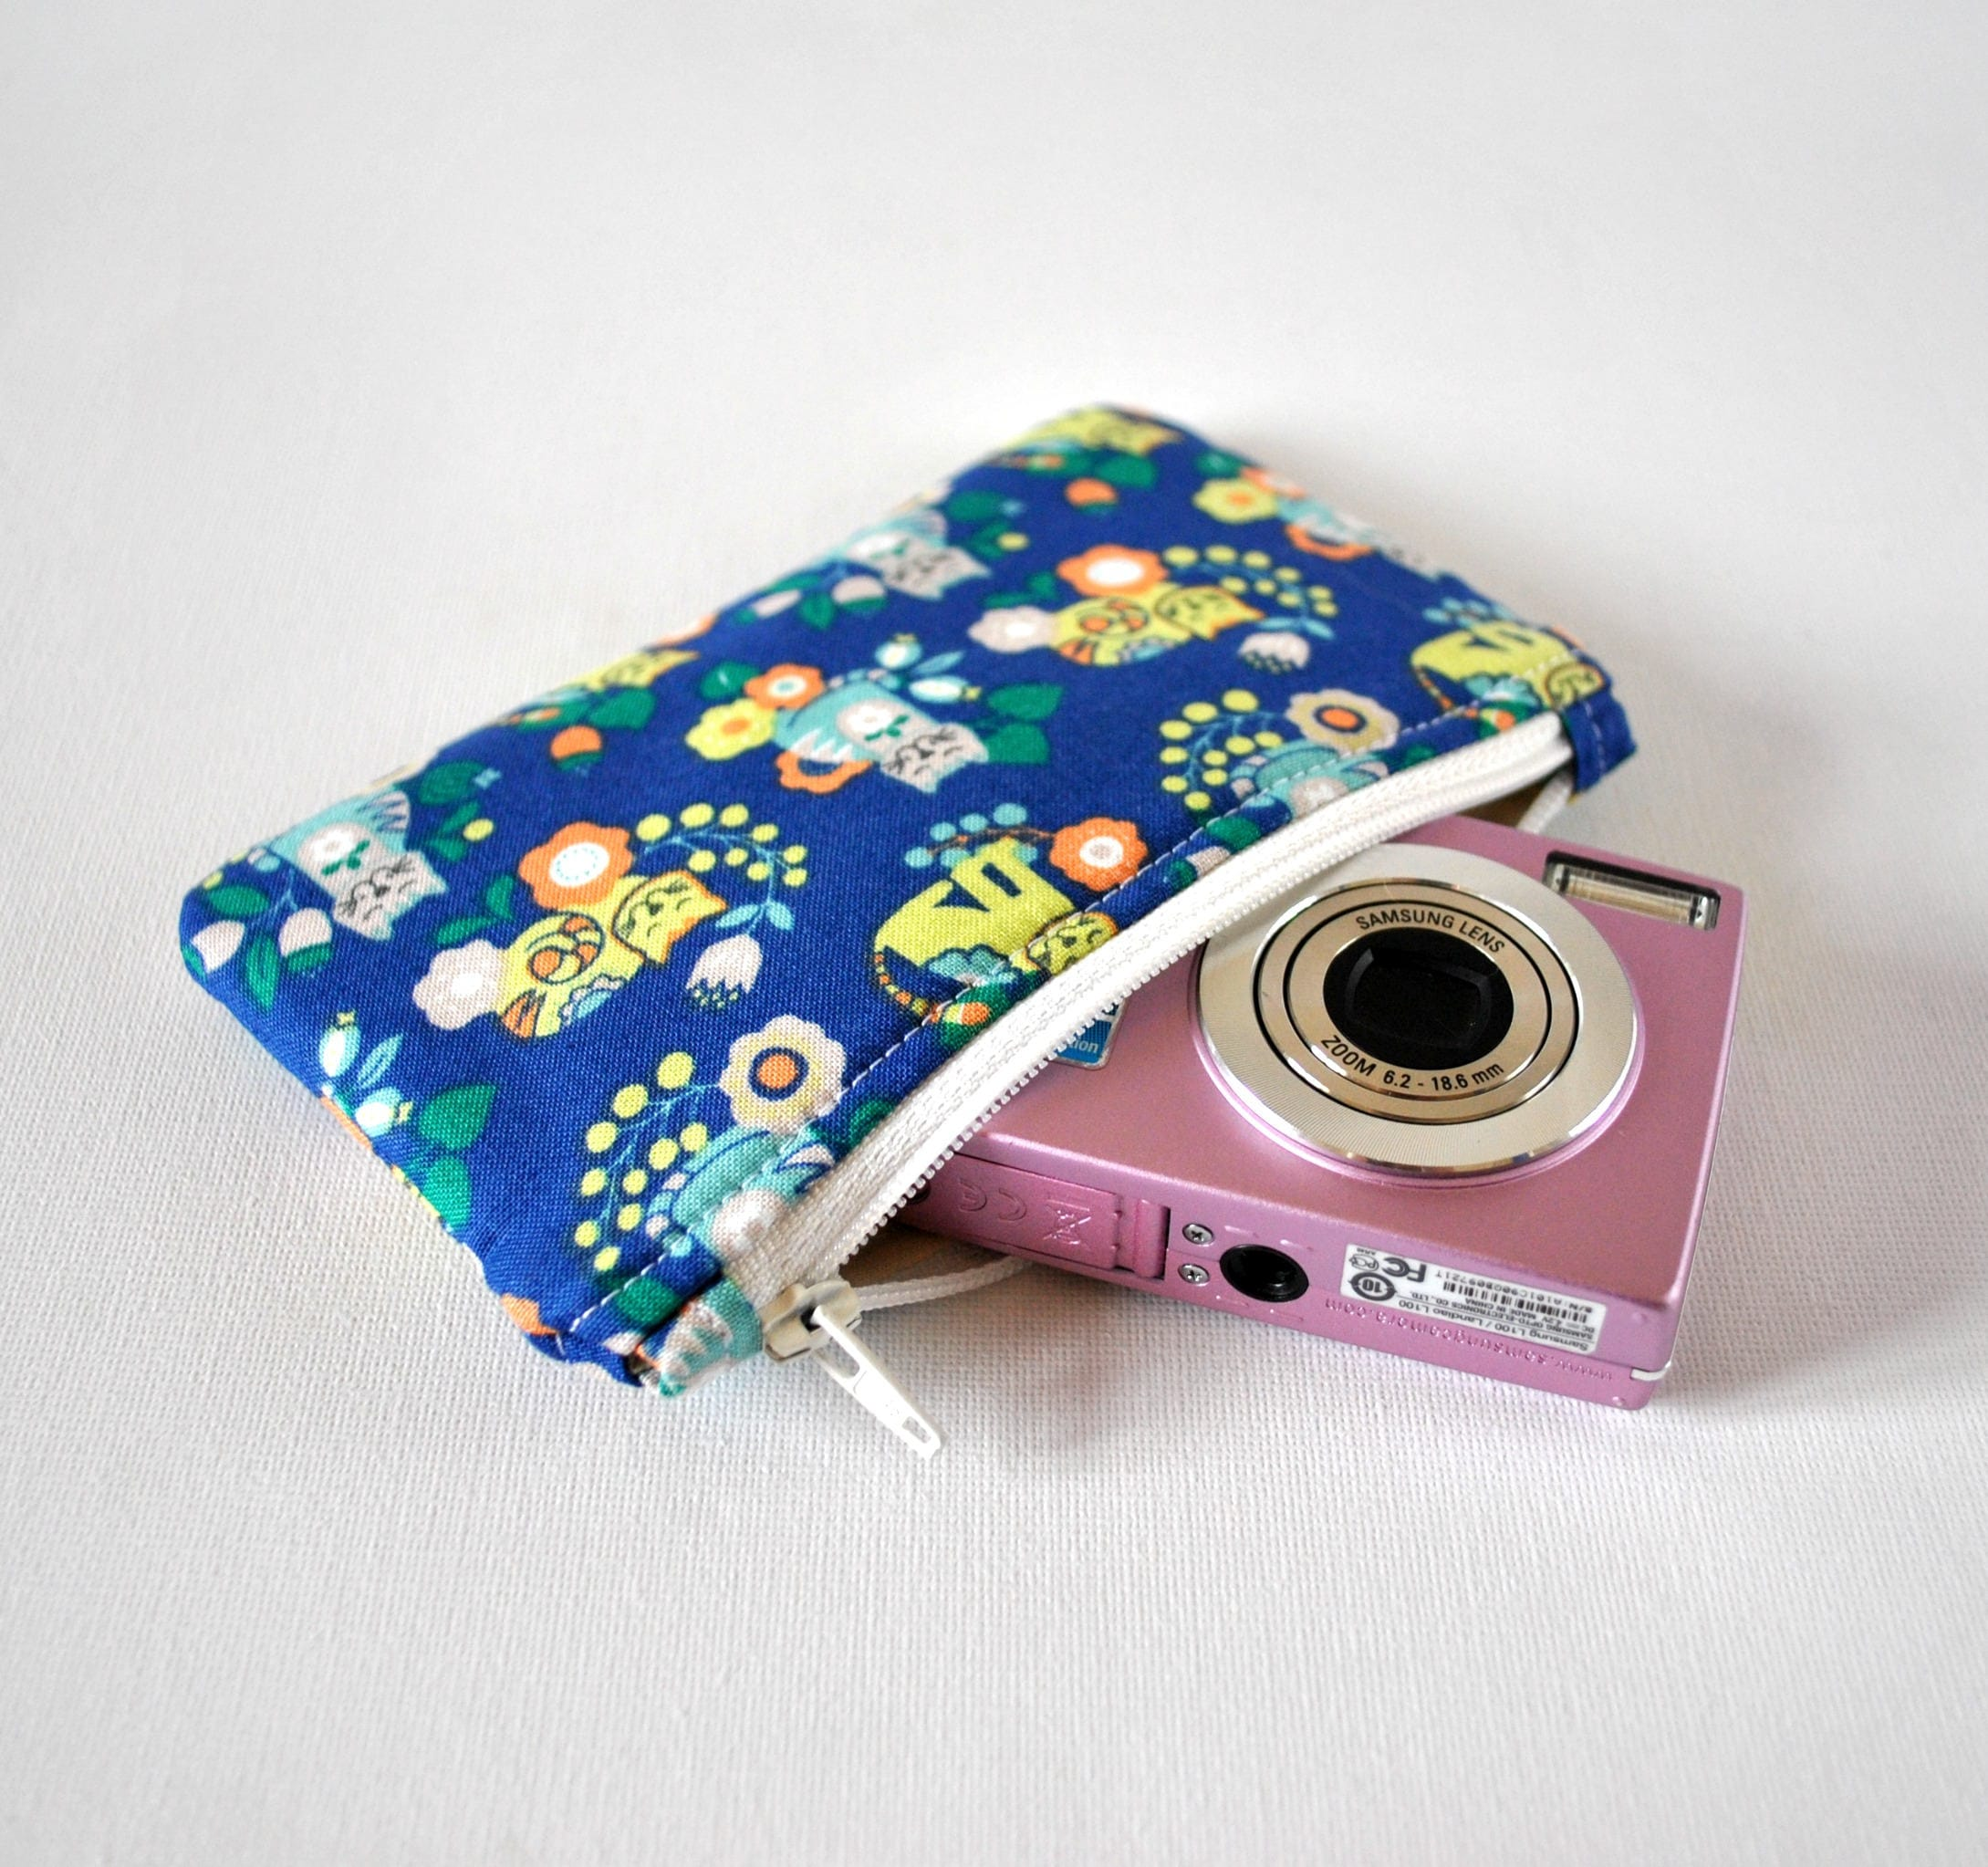 Womans cat retro 70s inspired animal gadget padded travel camera pouch mini makeup bag pussycat in blue and yellow and orange flowers.